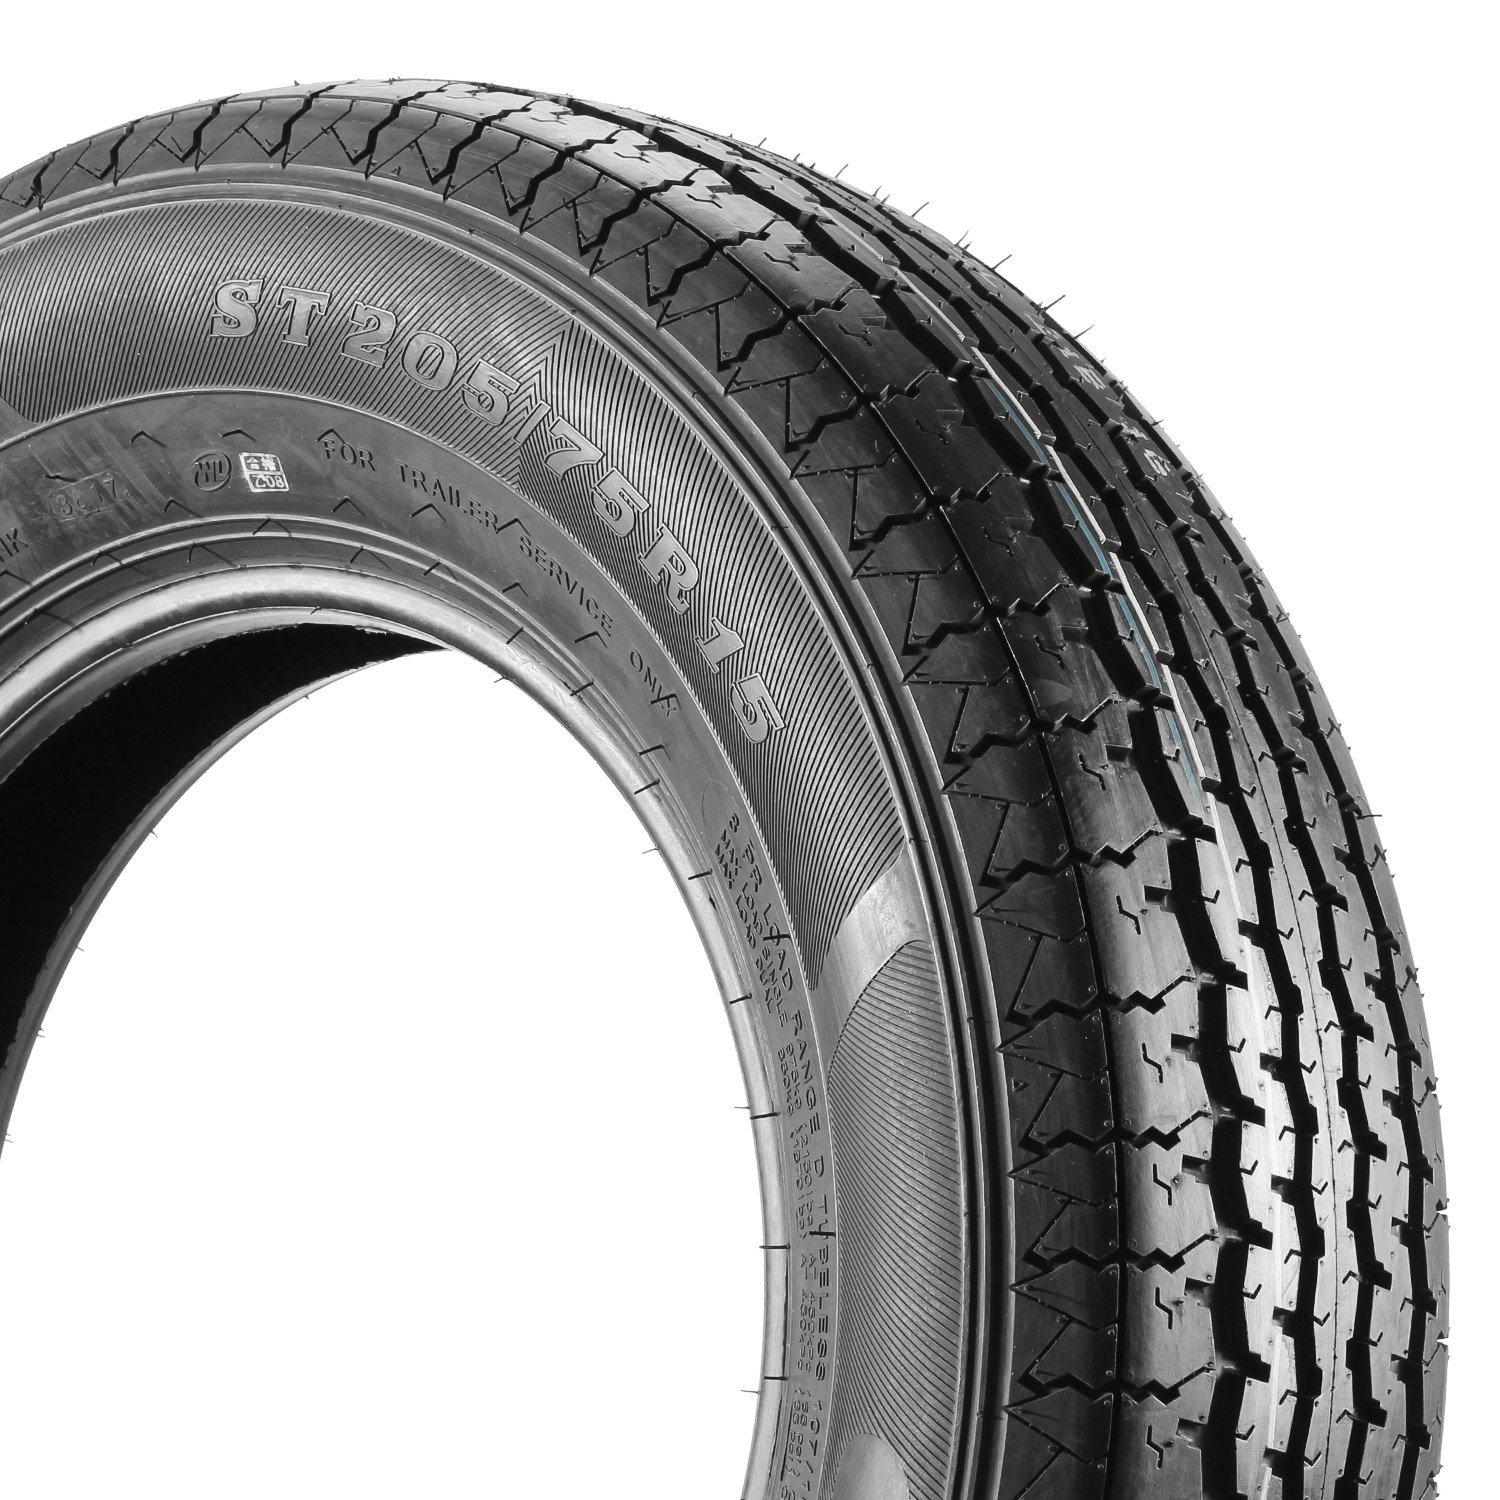 MaxAuto Radial Trailer Tires - ST205/75R15 ST205/75R-15 2057515 8Ply(Pack of 4) by MaxAuto (Image #3)